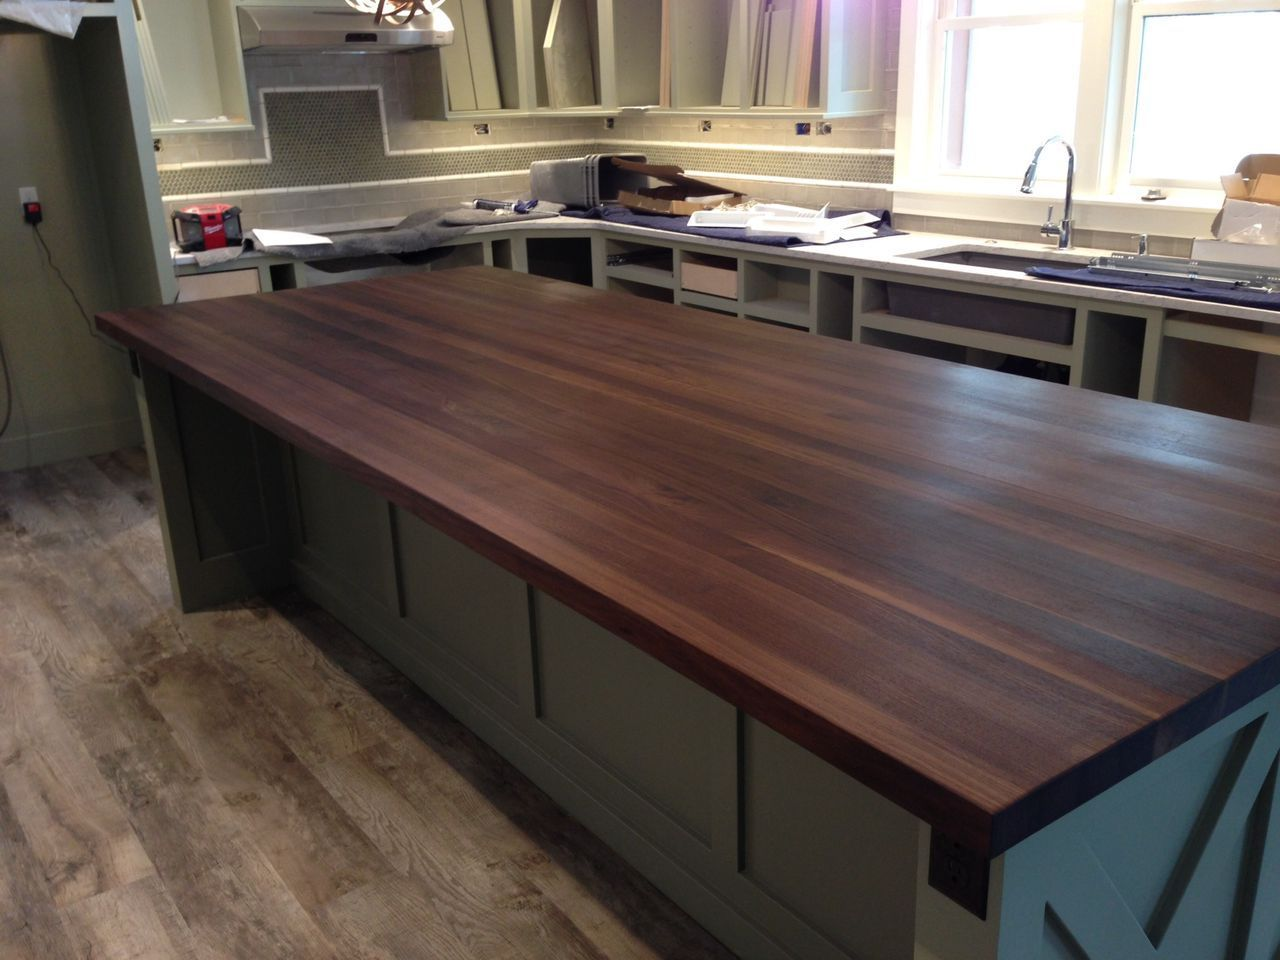 Makes A Beautiful Kitchen Island With Walnut Countertop Butcher